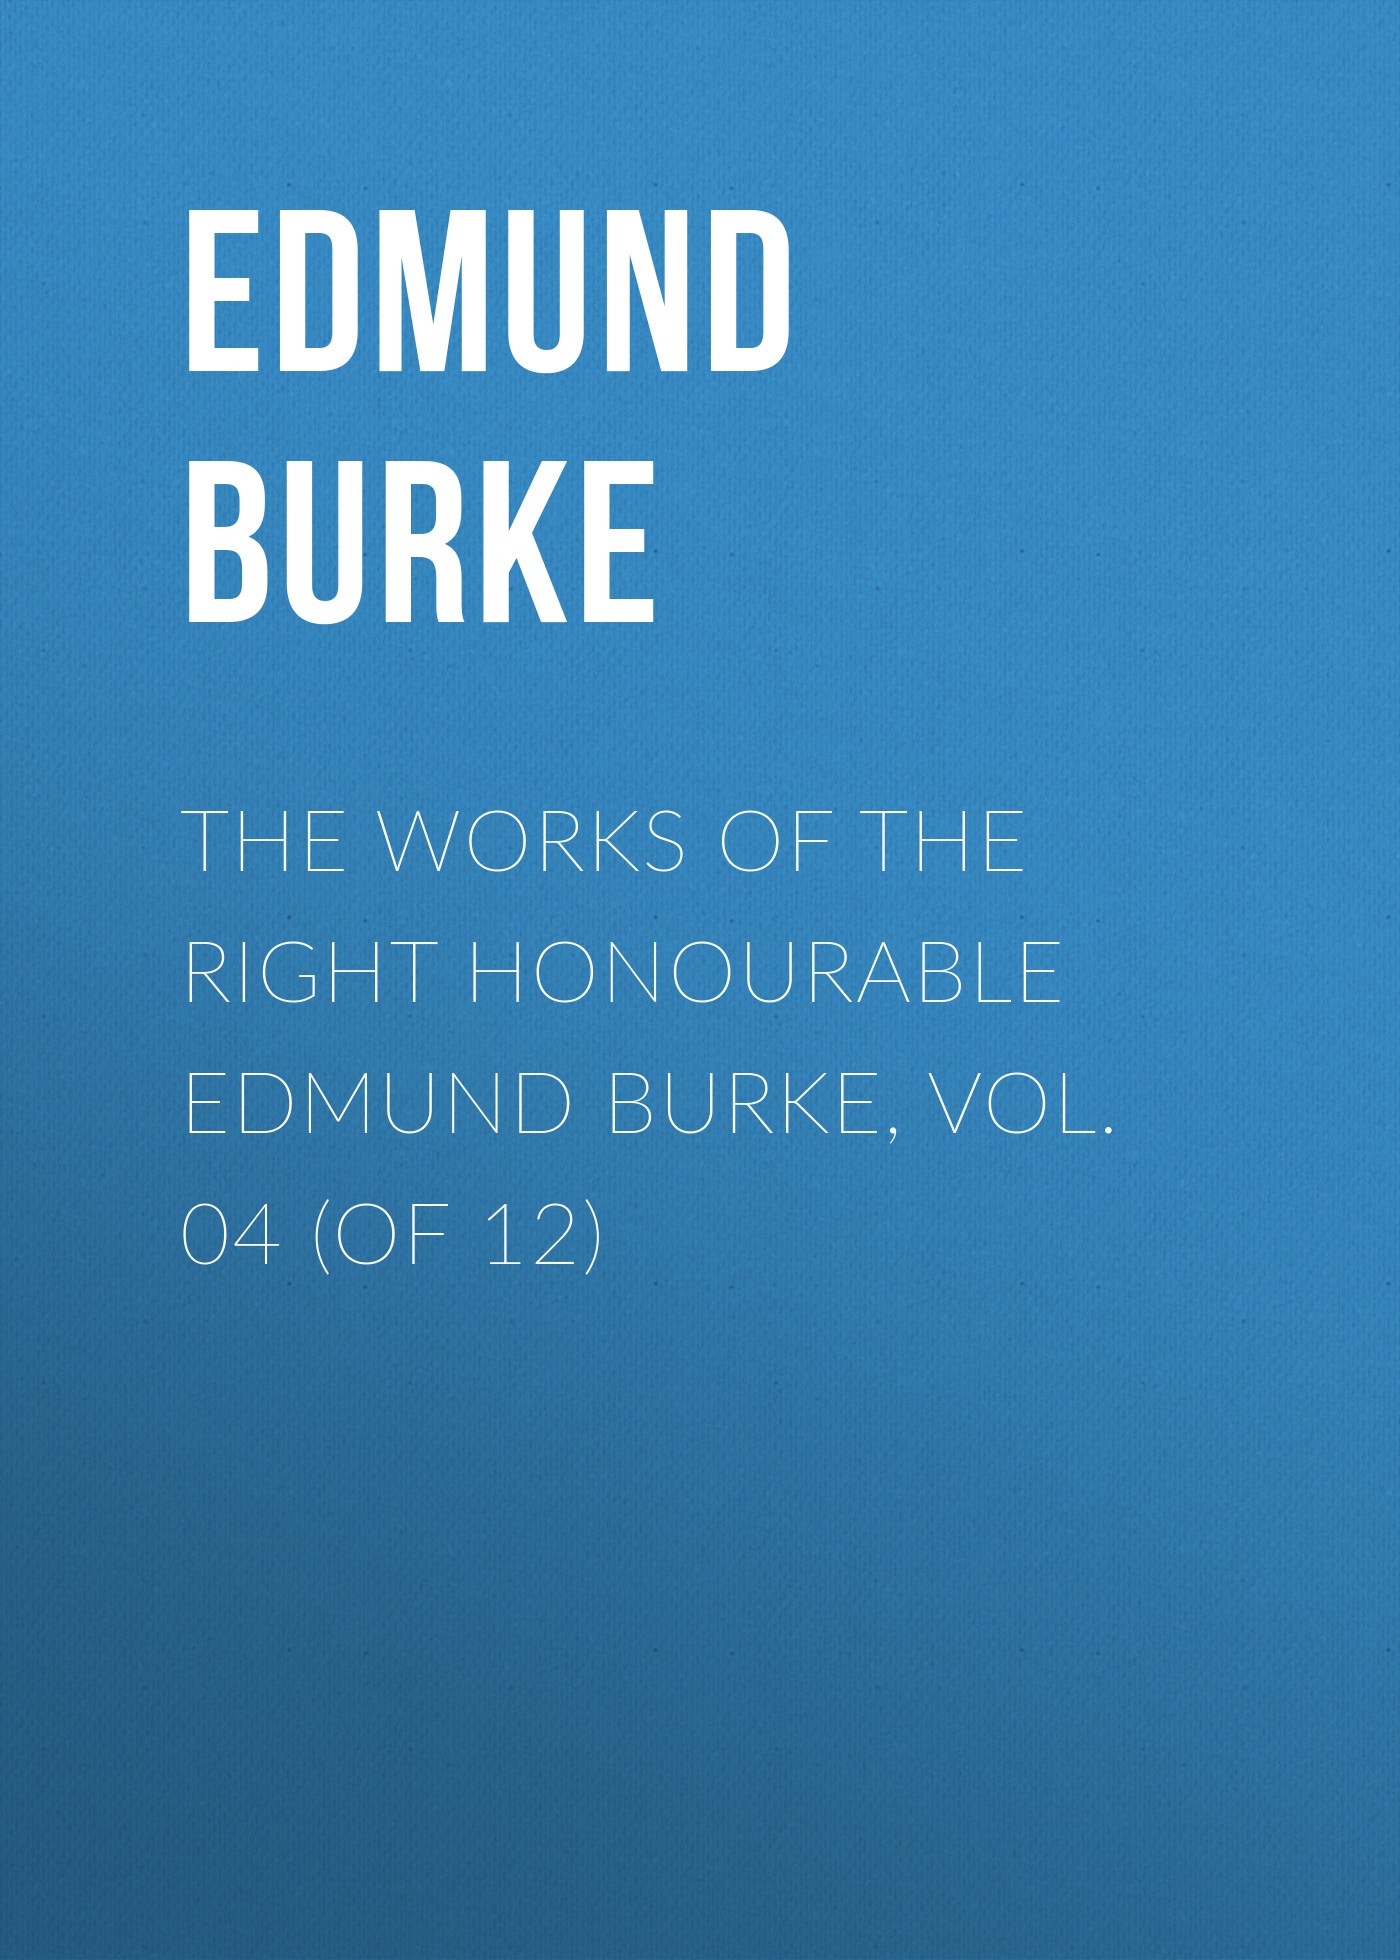 Edmund Burke The Works of the Right Honourable Edmund Burke, Vol. 04 (of 12) edmund burke the works of the right honourable edmund burke vol 12 of 12